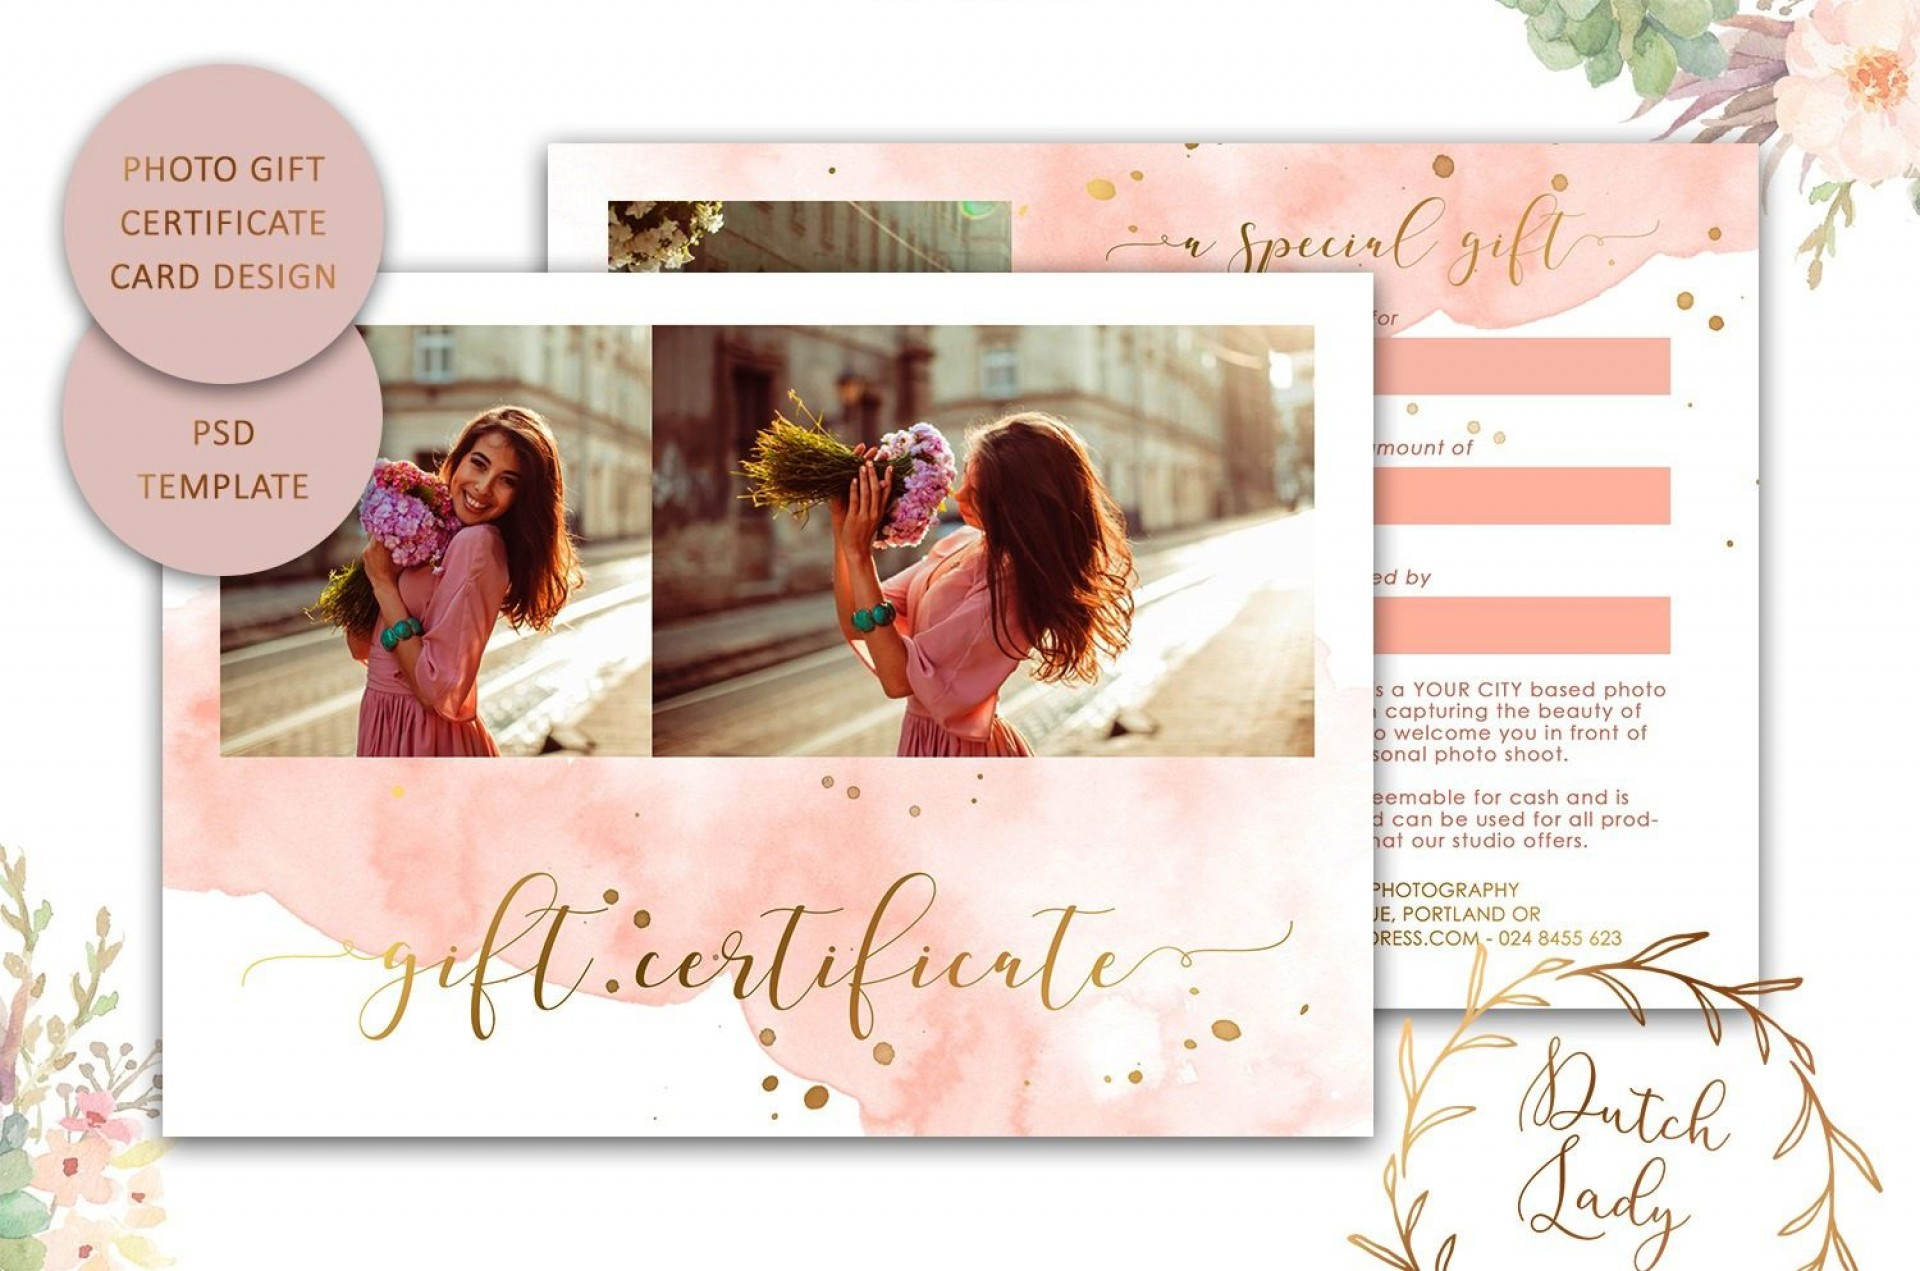 009 Top Photography Session Gift Certificate Template Picture  Photo Free Photoshoot1920